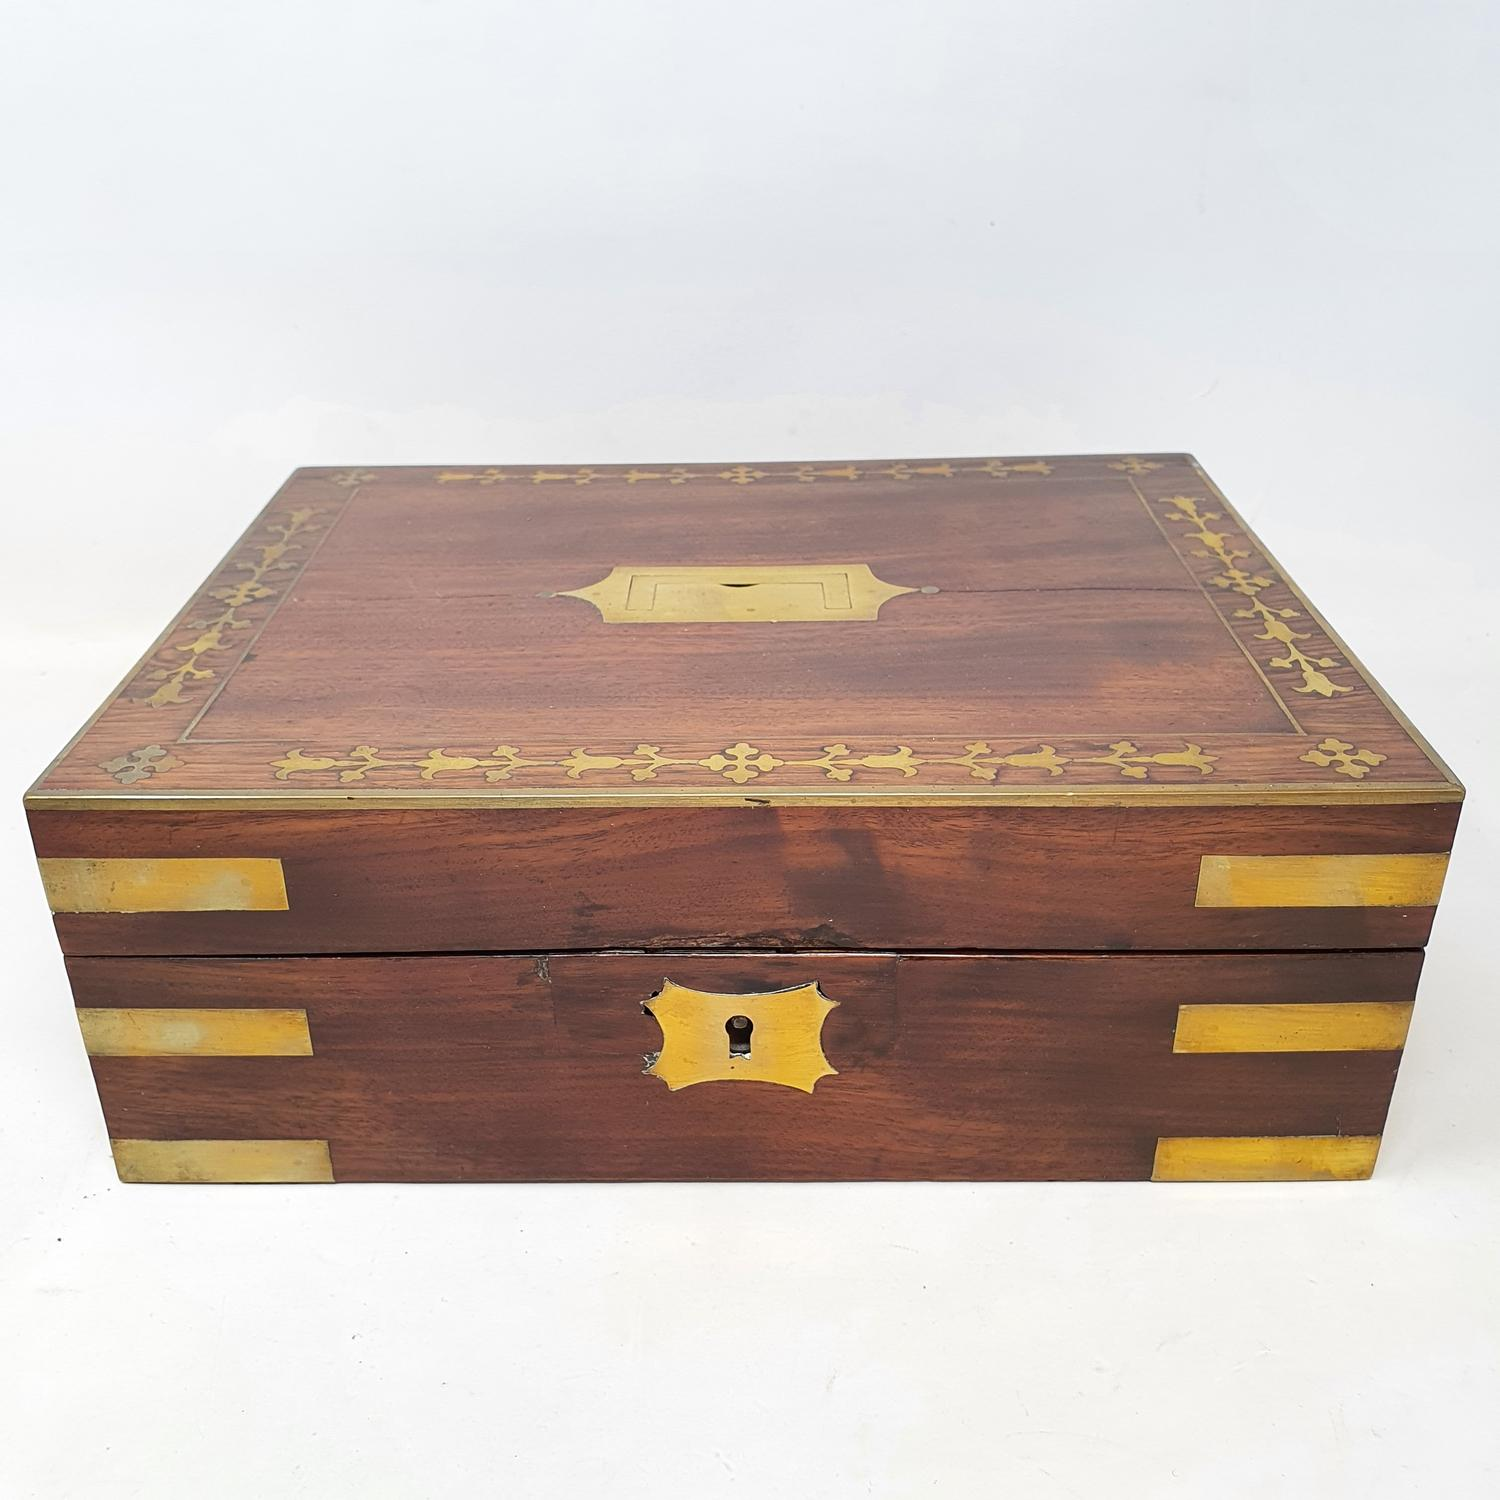 A 19th century mahogany and brass bound jewellery box, with a fitted interior, 30 cm wide - Image 2 of 5